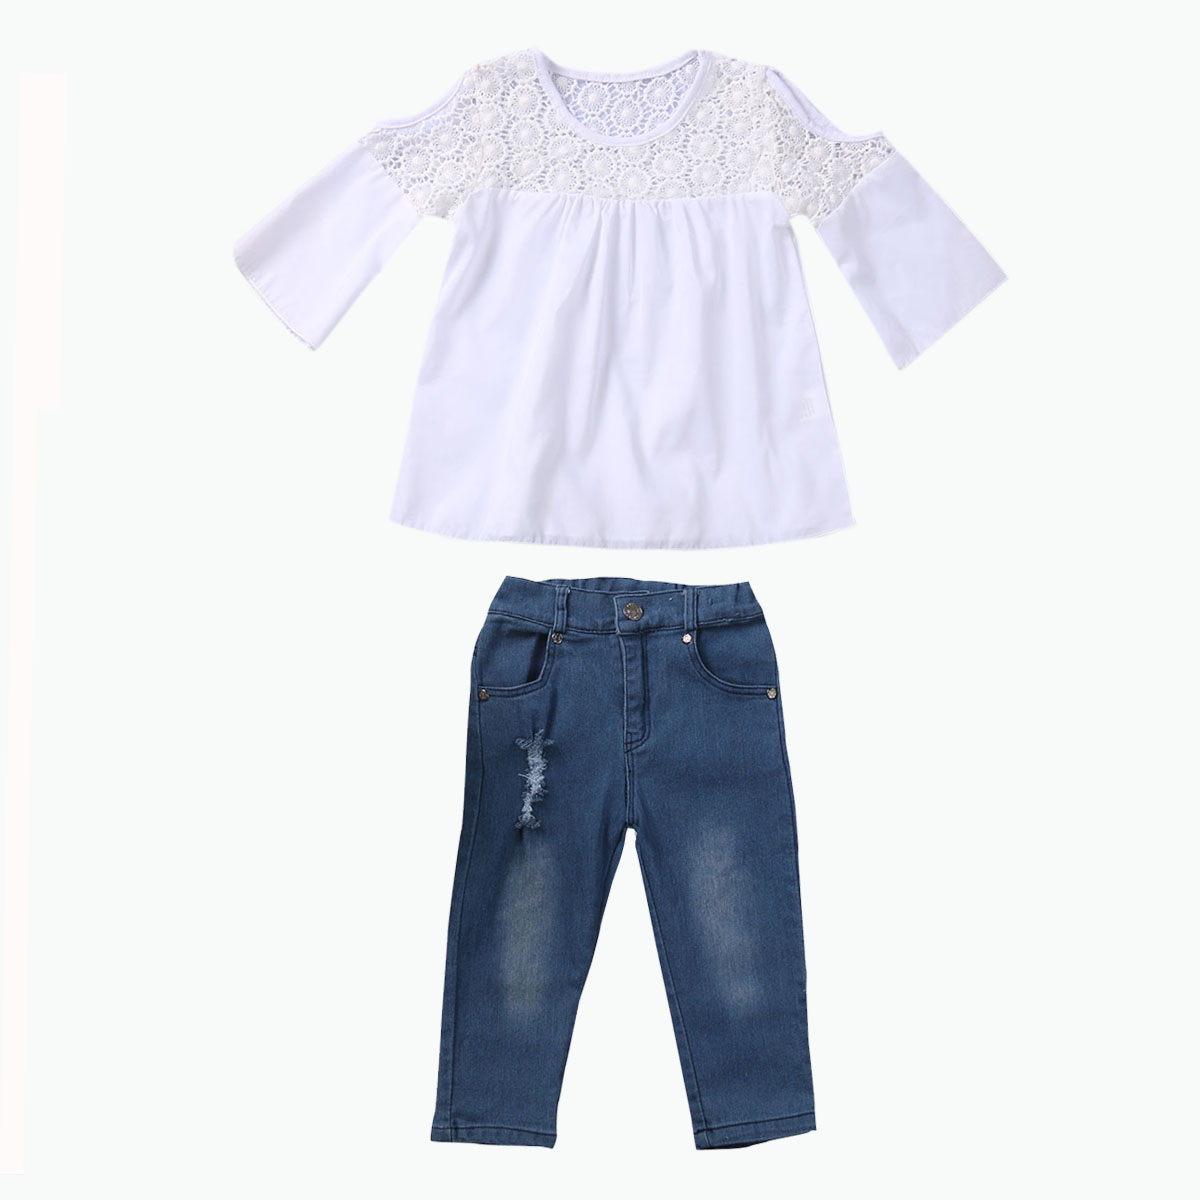 2017 Cute Kids Girl Clothing Set Off shoulder Lace White T-shirt Tops+Denim Pant Jeans 2PCS Children Clothes 2-7Y 2017 cute kids girl clothing set off shoulder lace white t shirt tops denim pant jeans 2pcs children clothes 2 7y